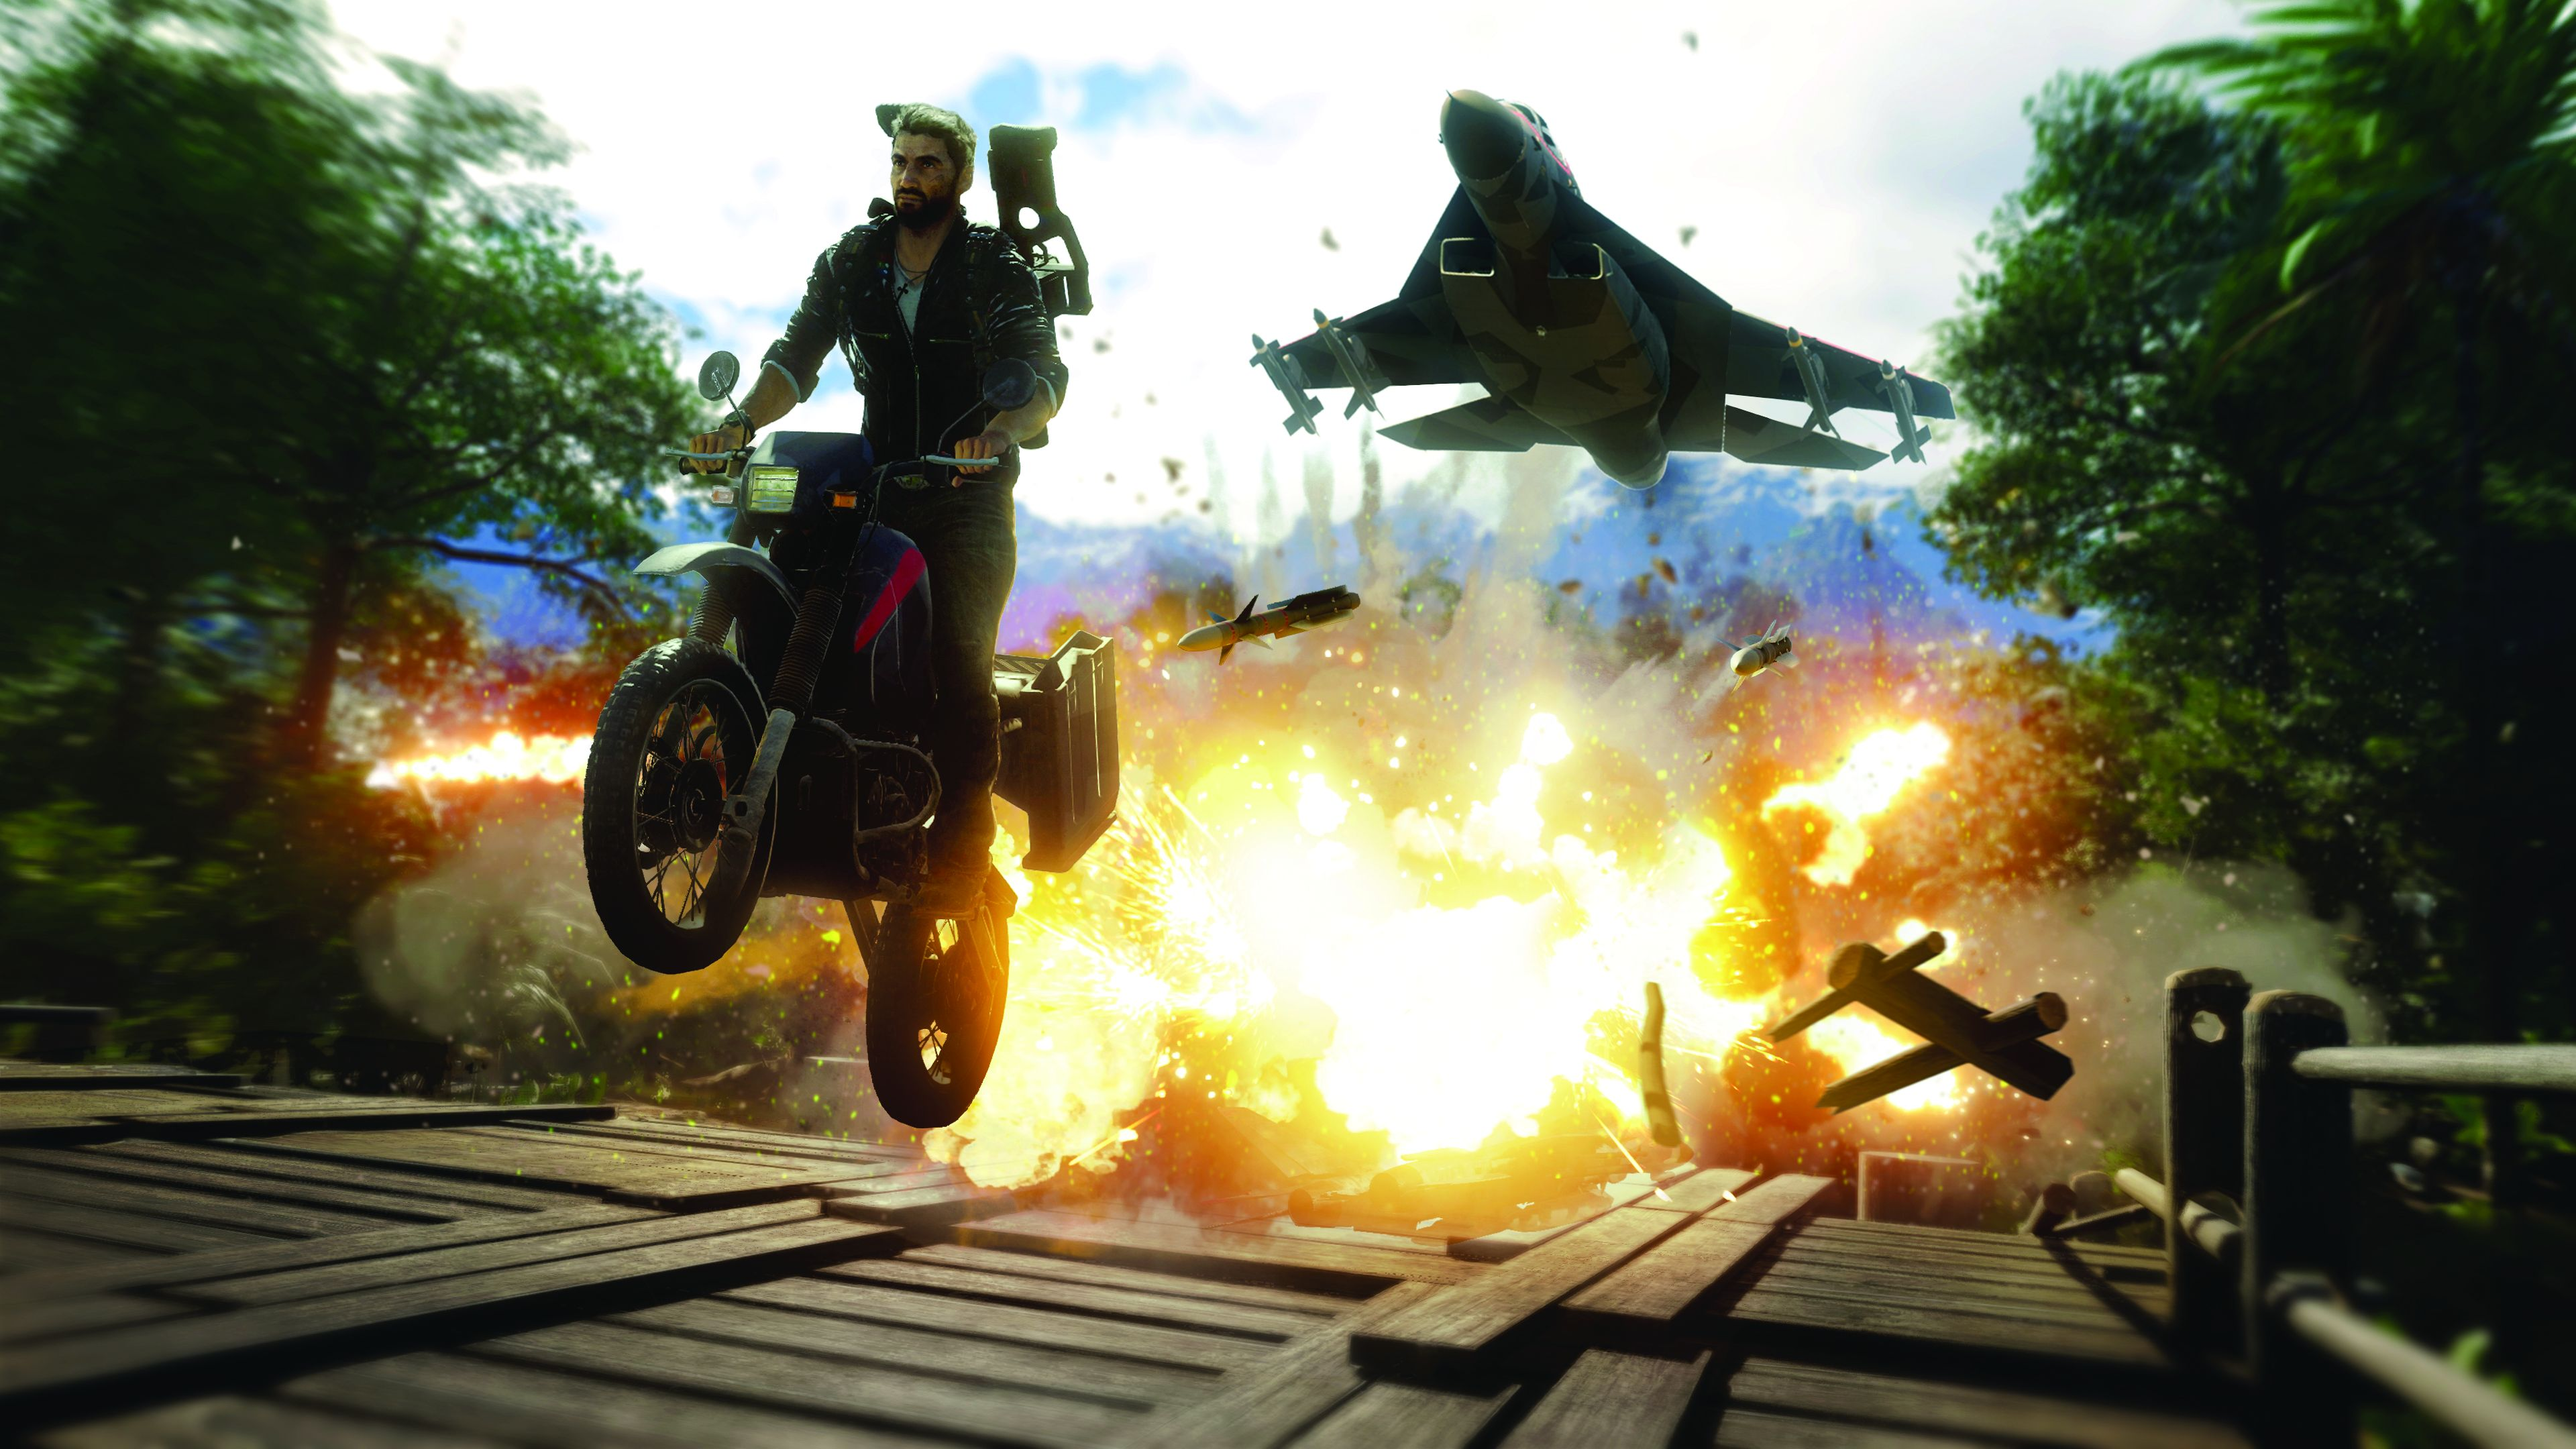 John Wick's creator is writing a Just Cause movie | PC Gamer